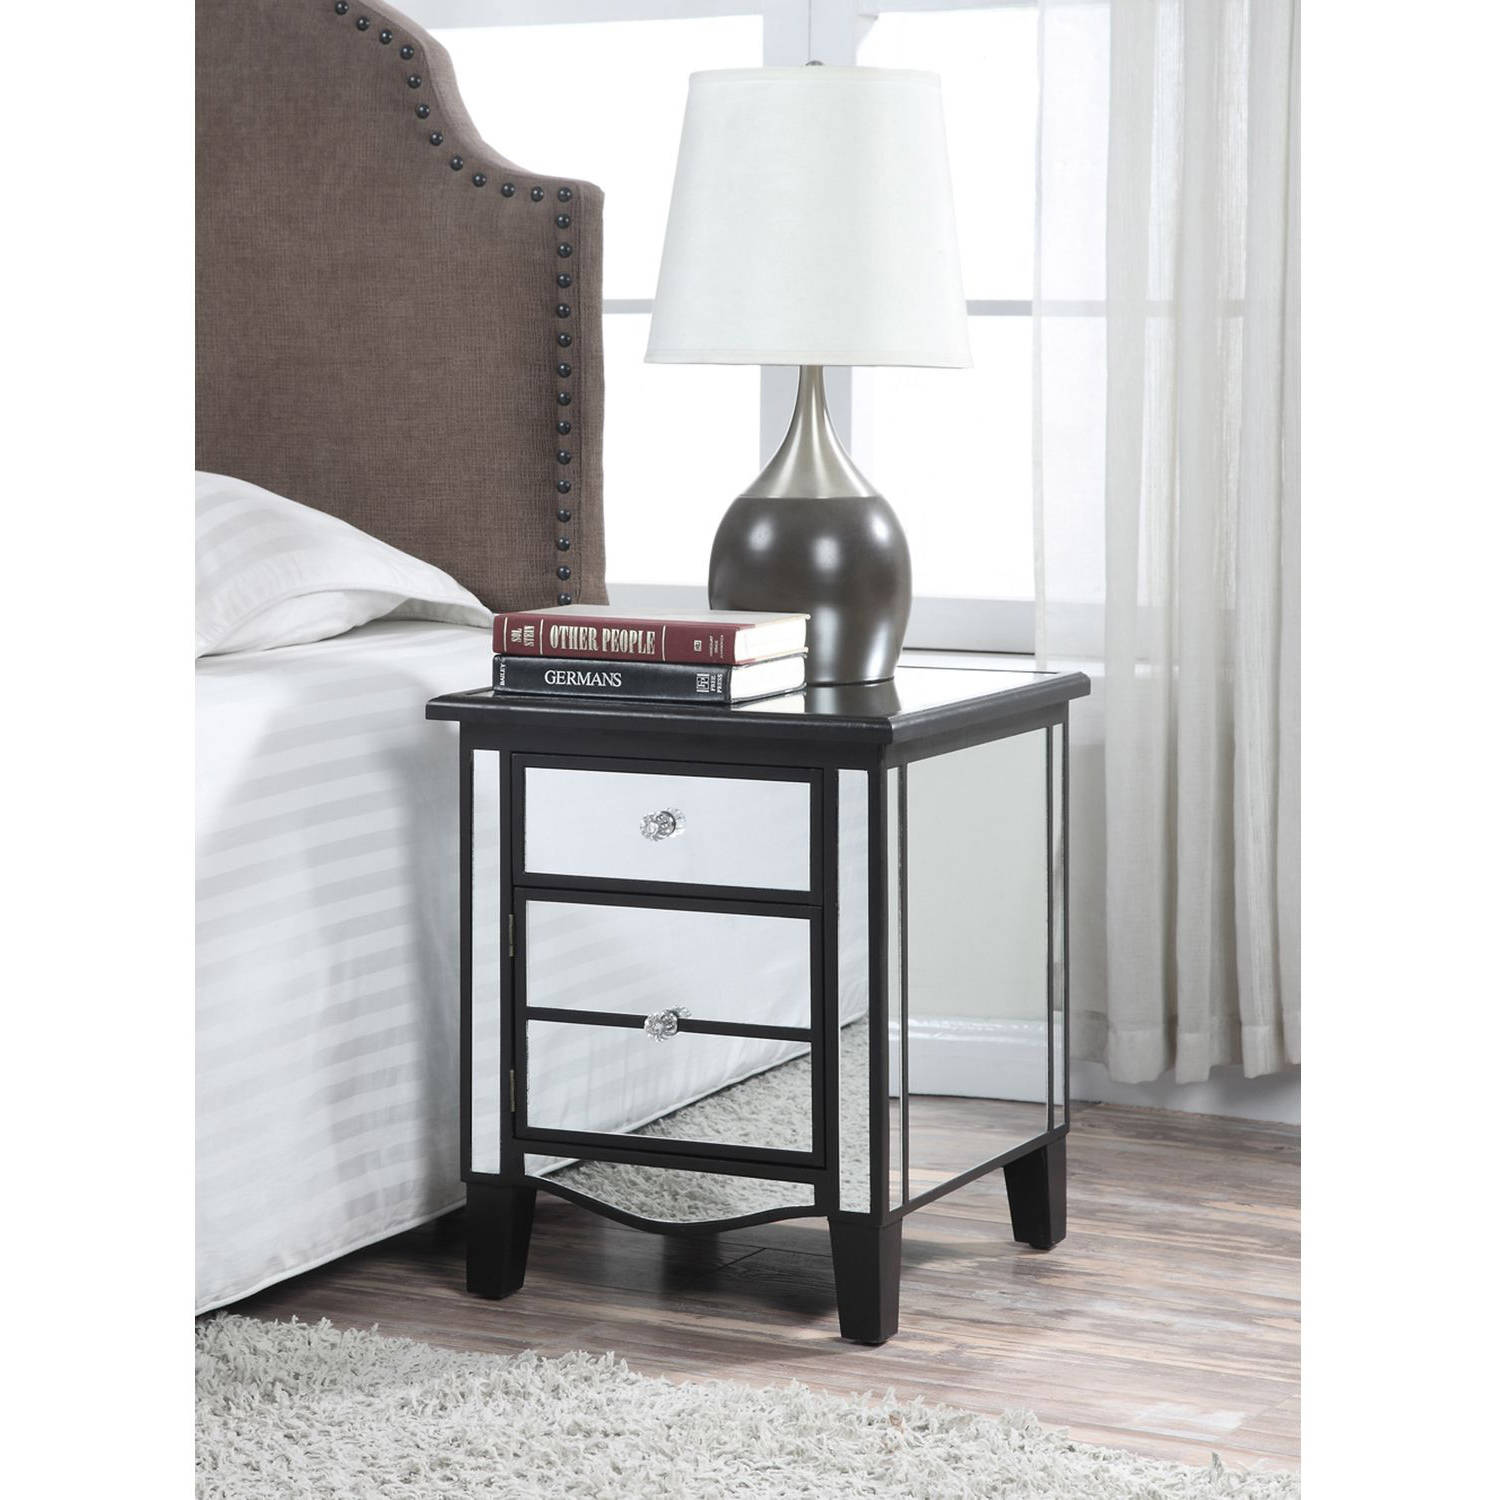 convenience concepts gold coast park lane mirrored end table black mirror multiple colors big lots changing what kind paint should use furniture stanley louis philippe bedroom dog